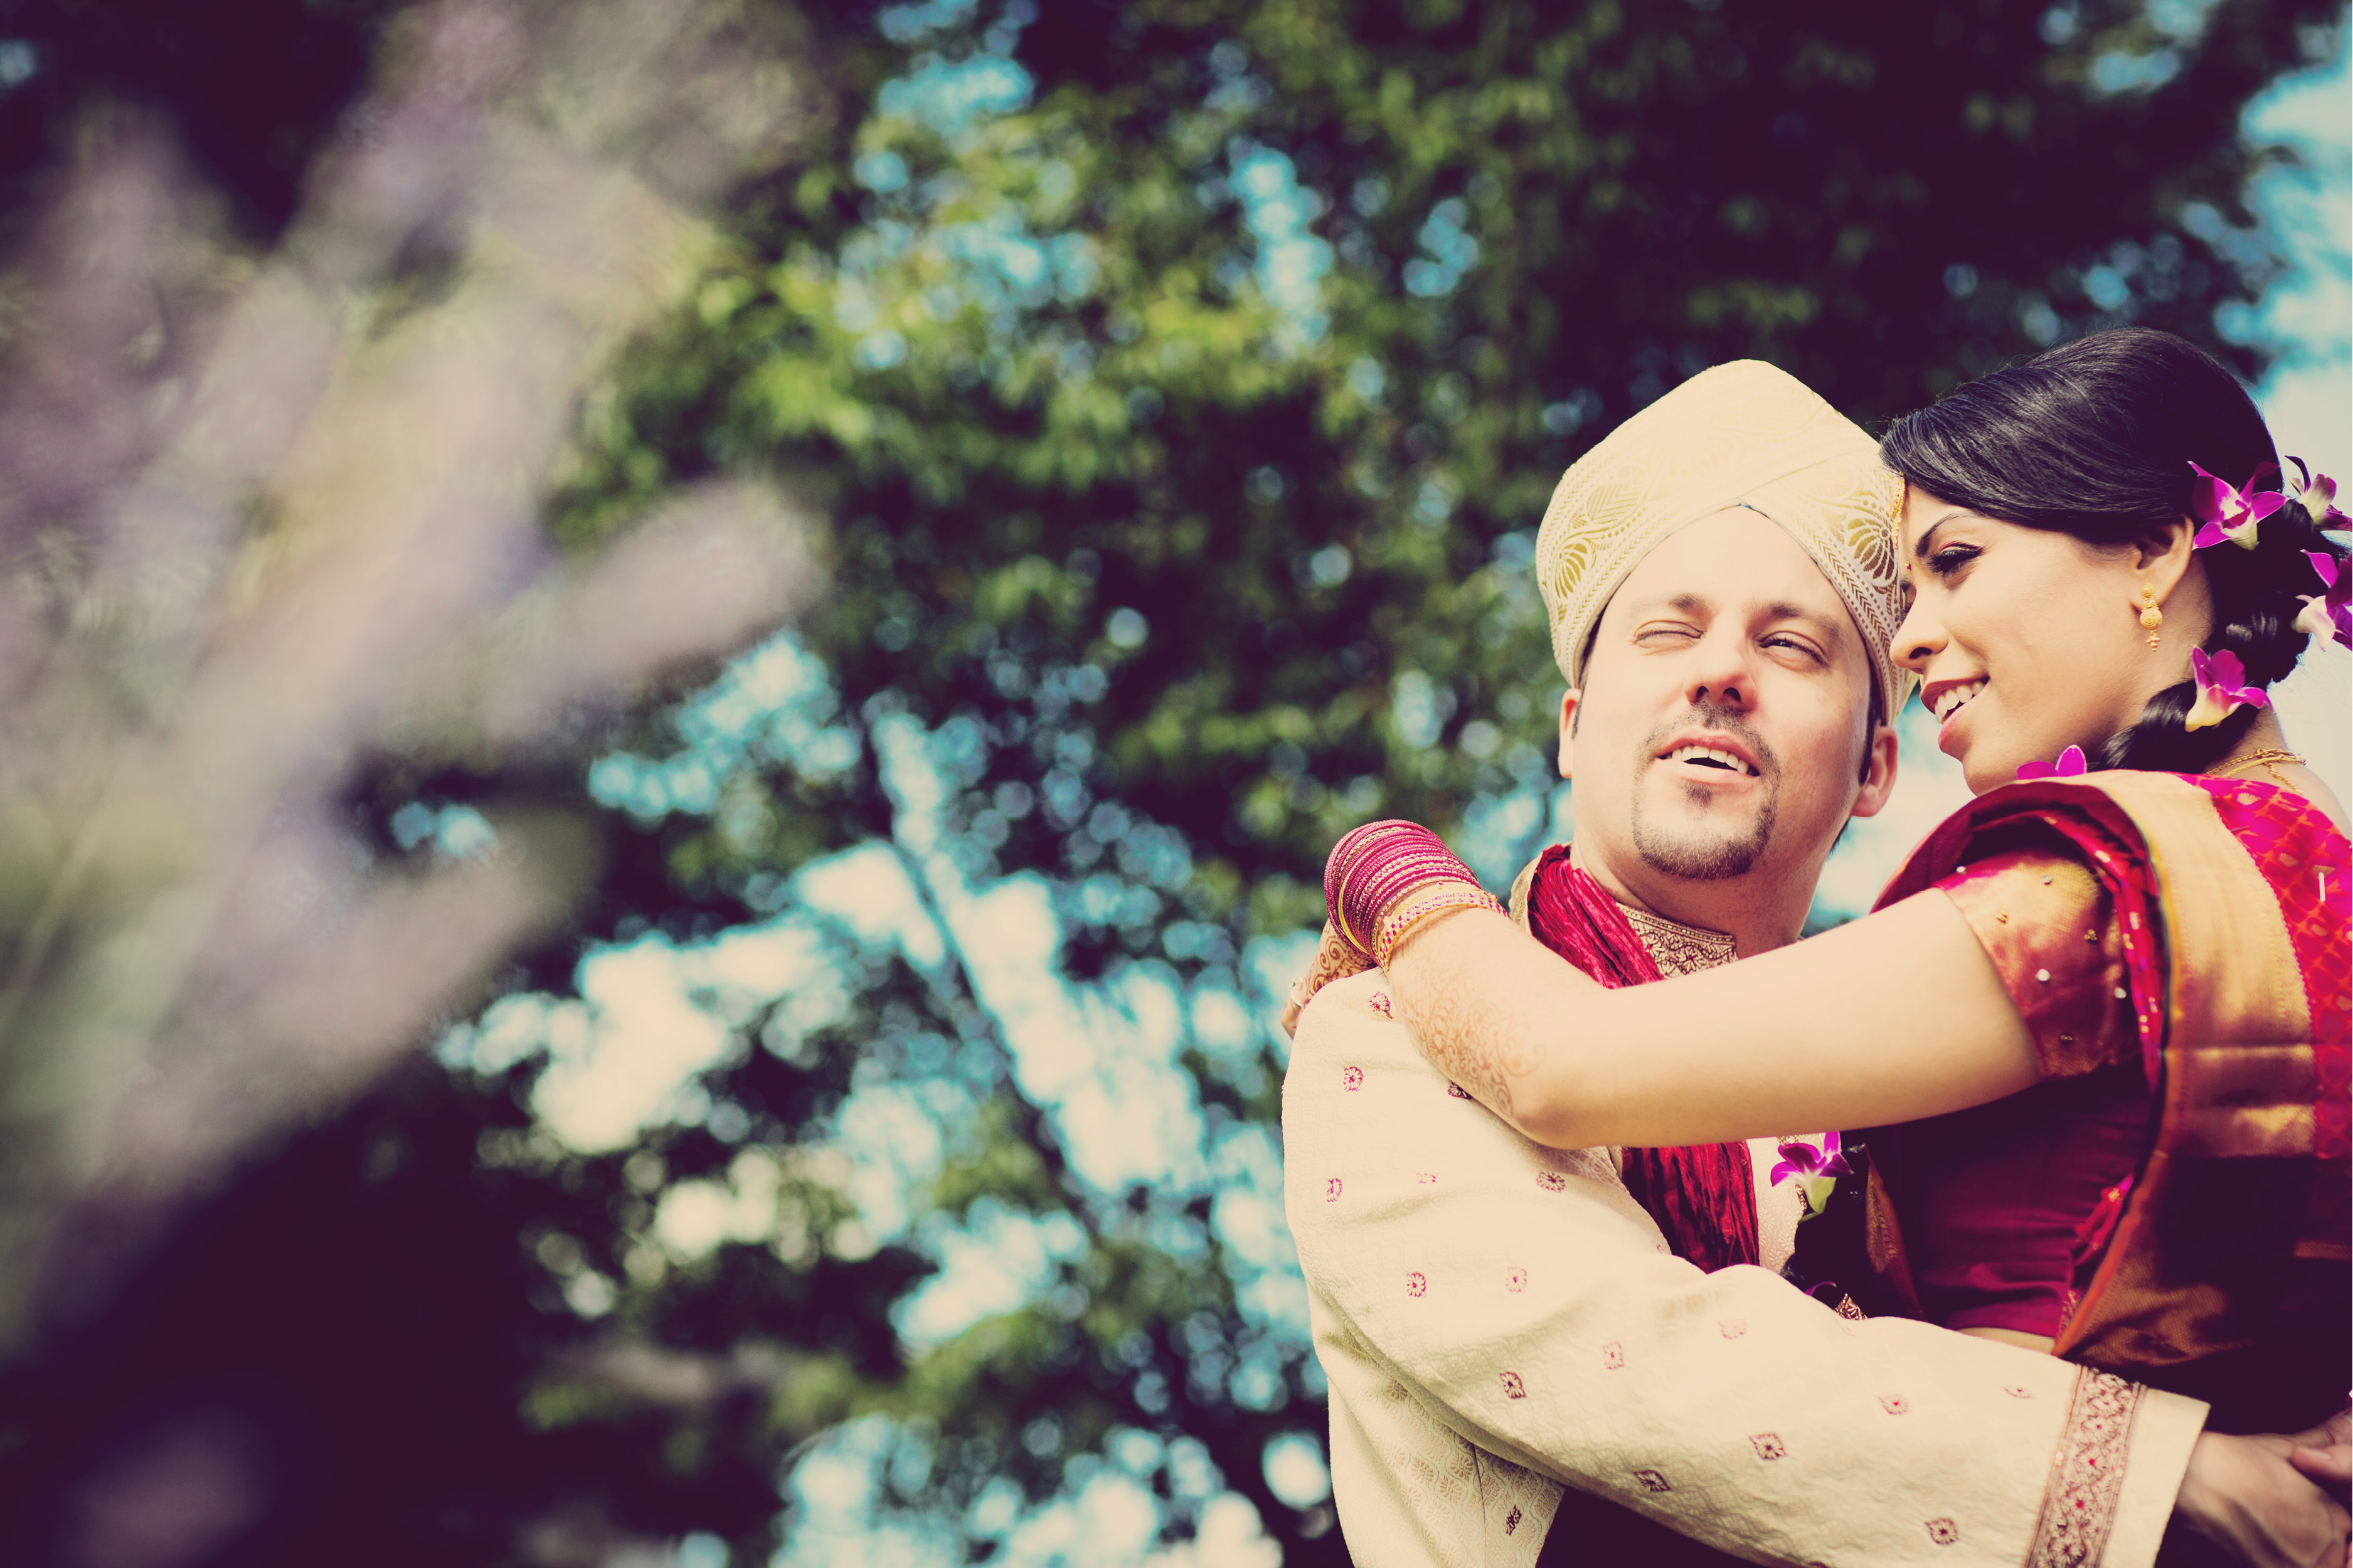 Emma_cleary_photography Indian Wedding6